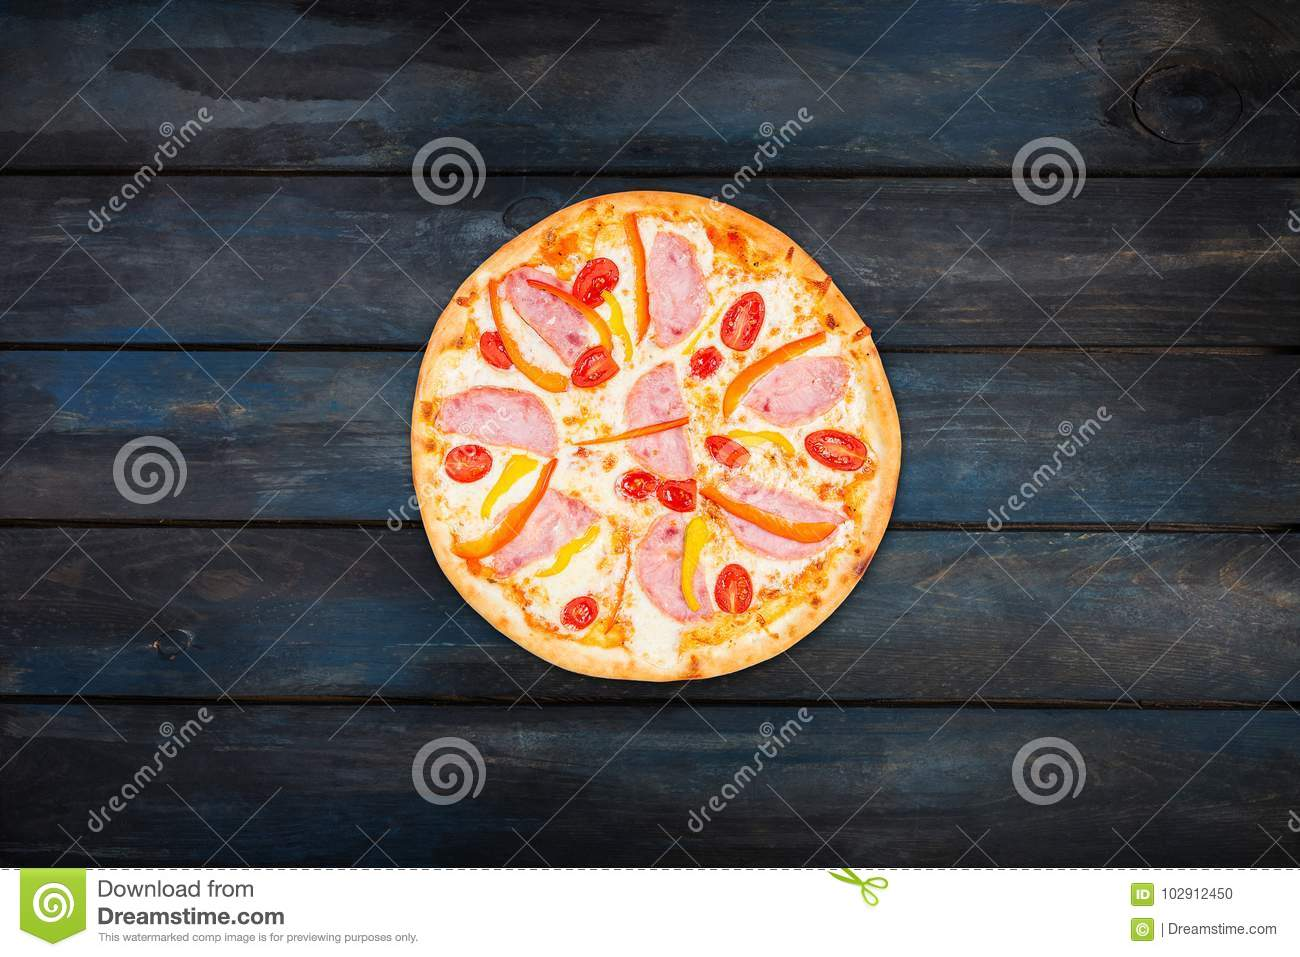 Delicious pizza with ham sweet peppers and tomatoes on a dark wooden background. Top view center orientation